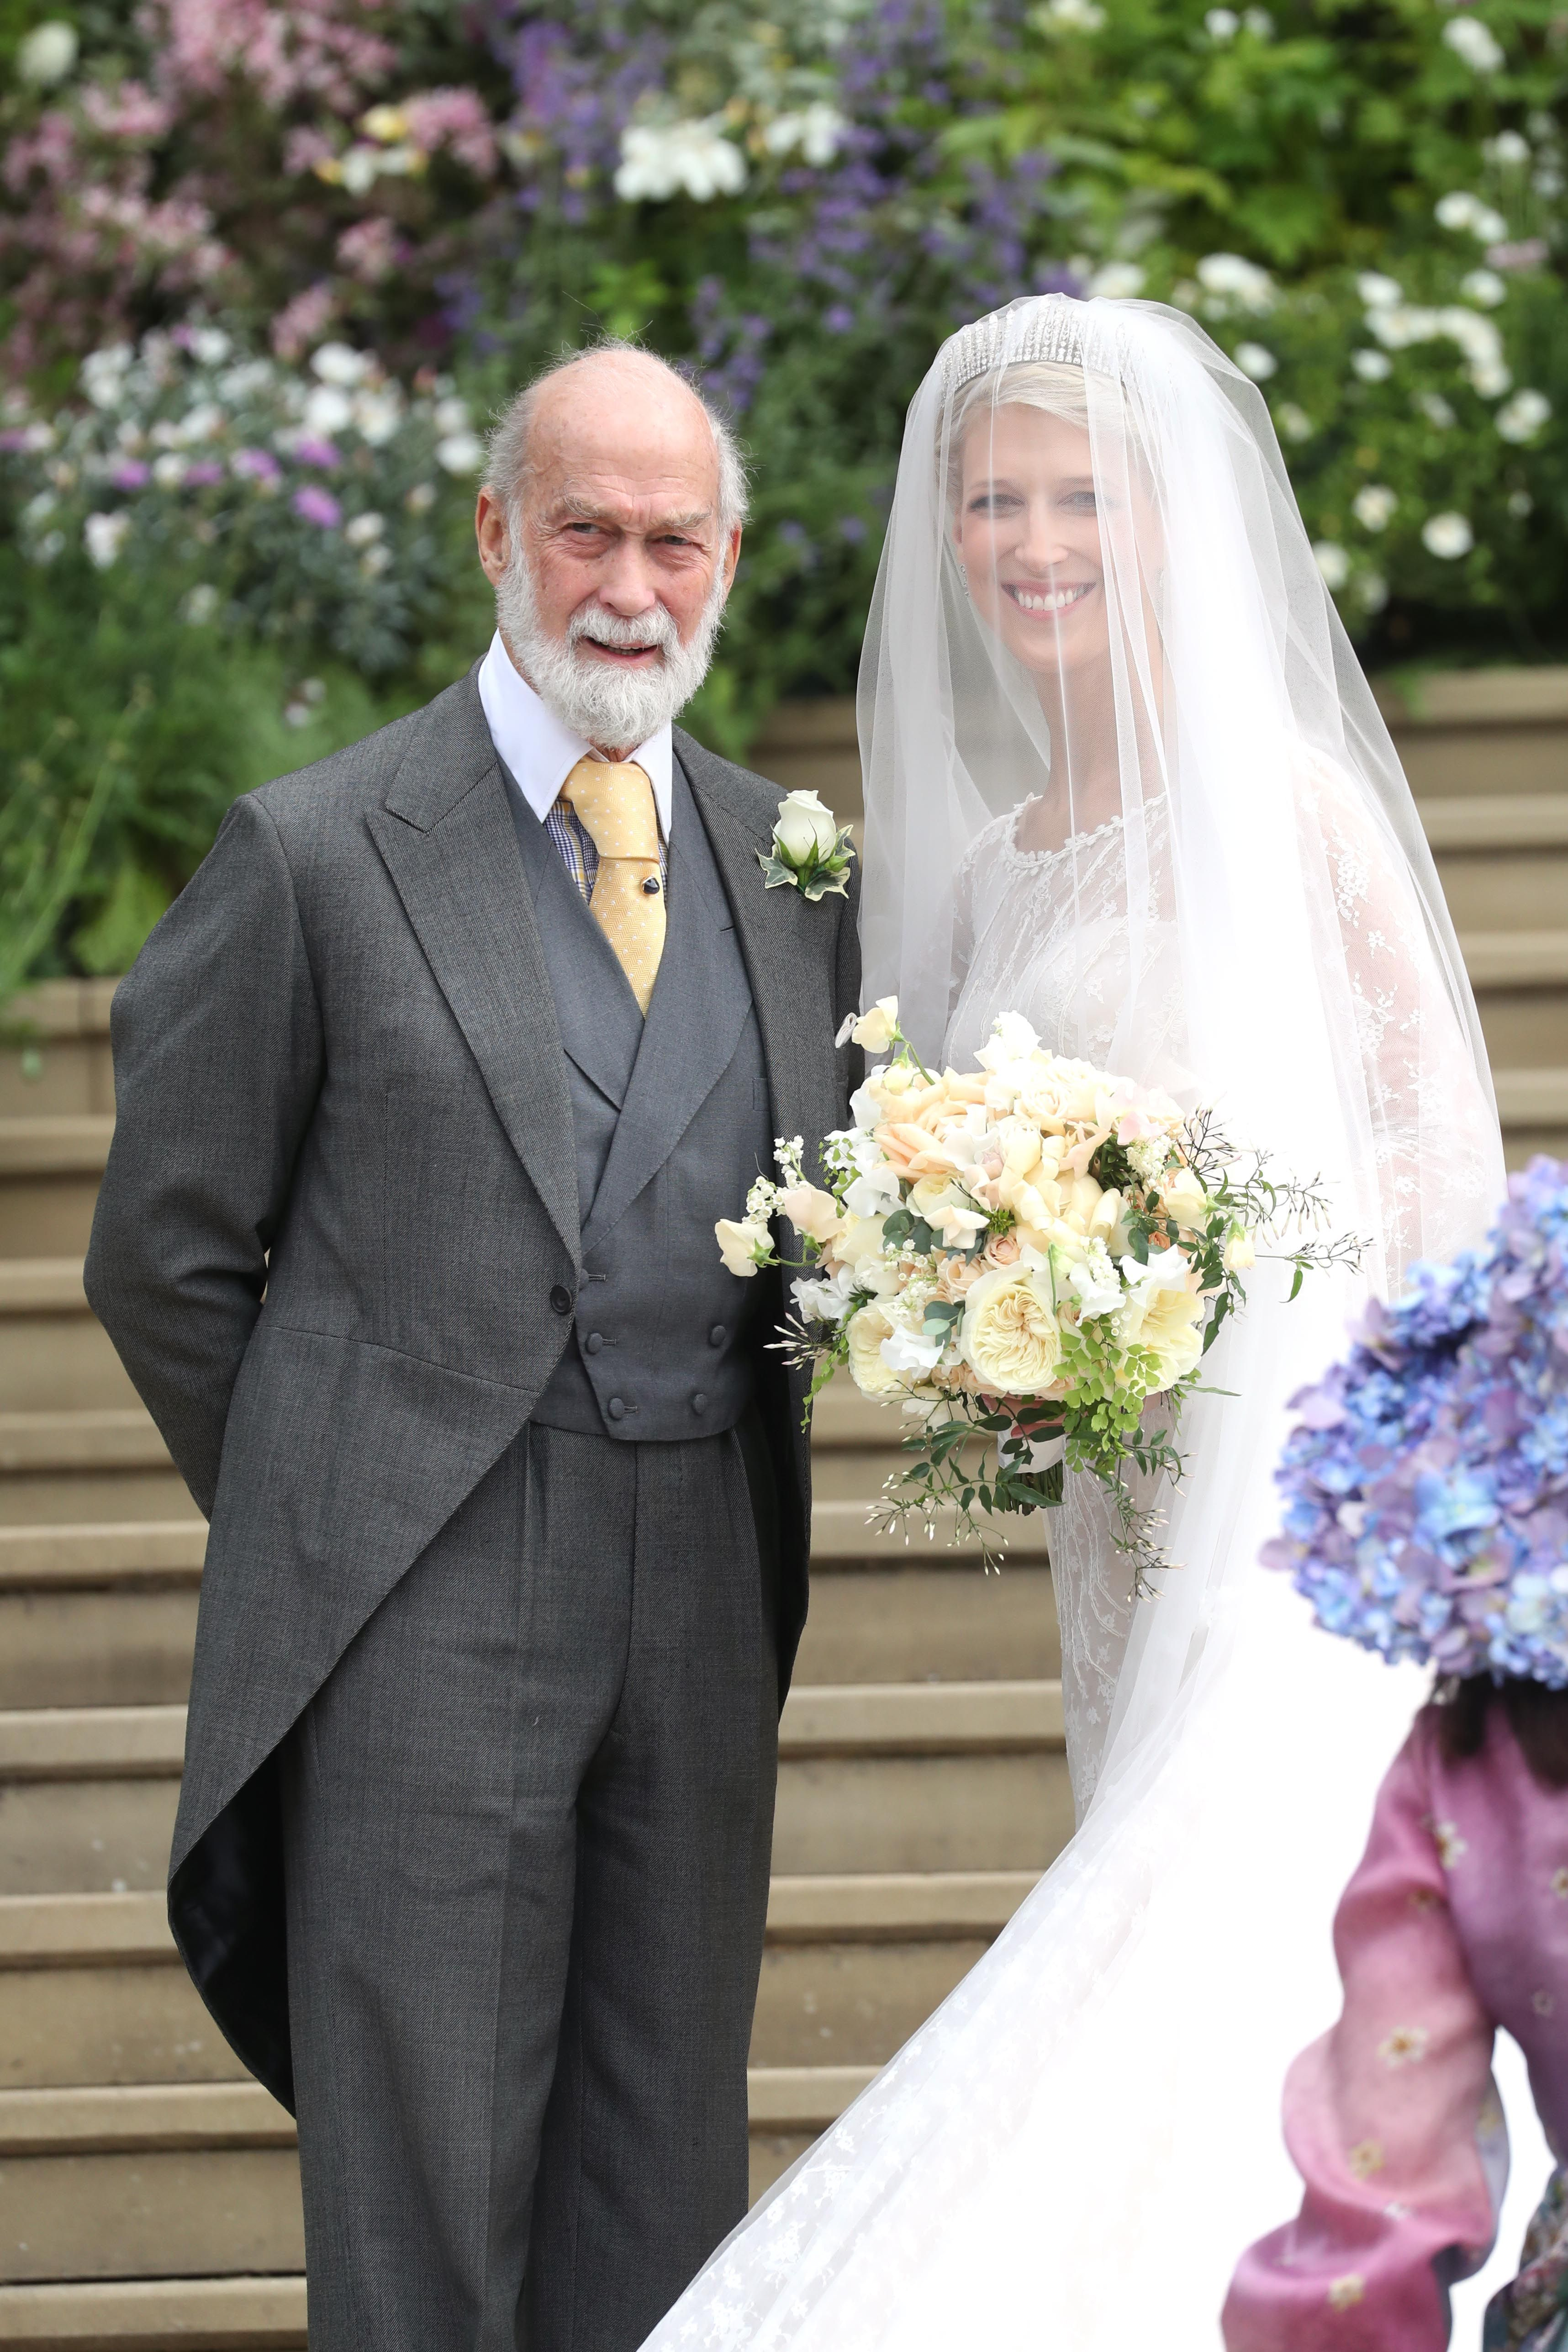 Lady Gabriella Windsor's wedding reception dress pictures